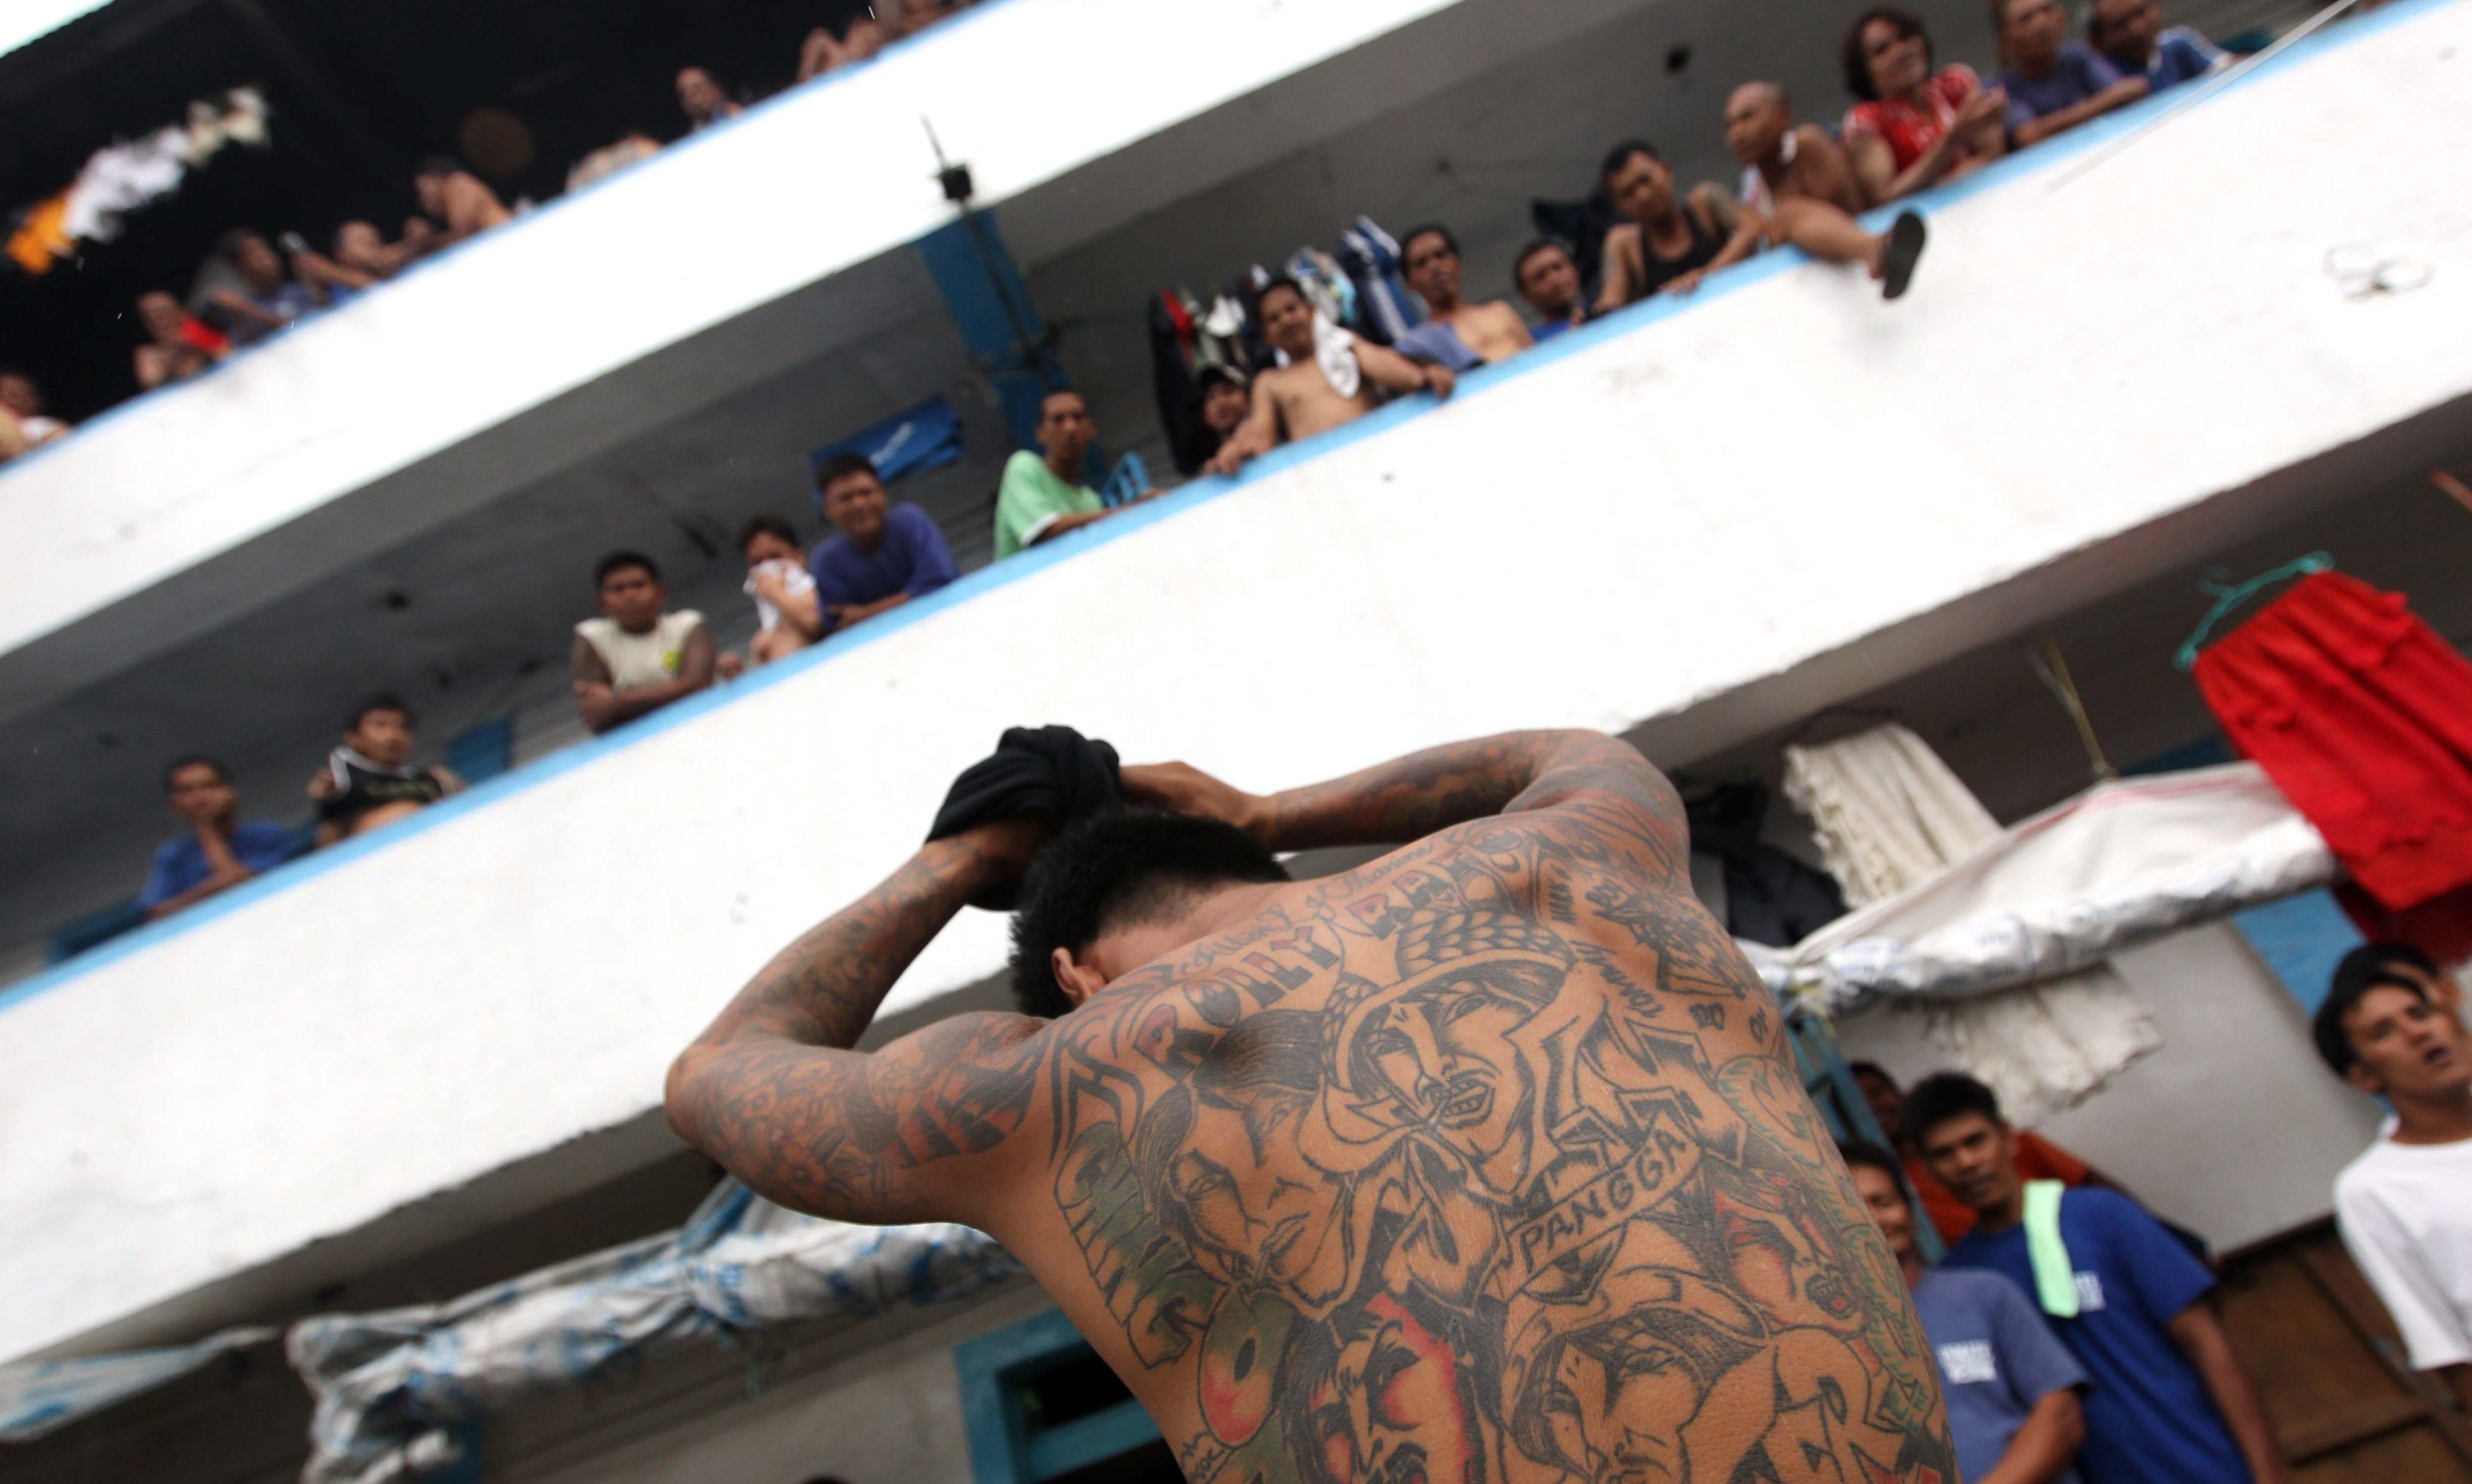 'We don't need the death penalty': 20% of inmates die each year in Philippines jail